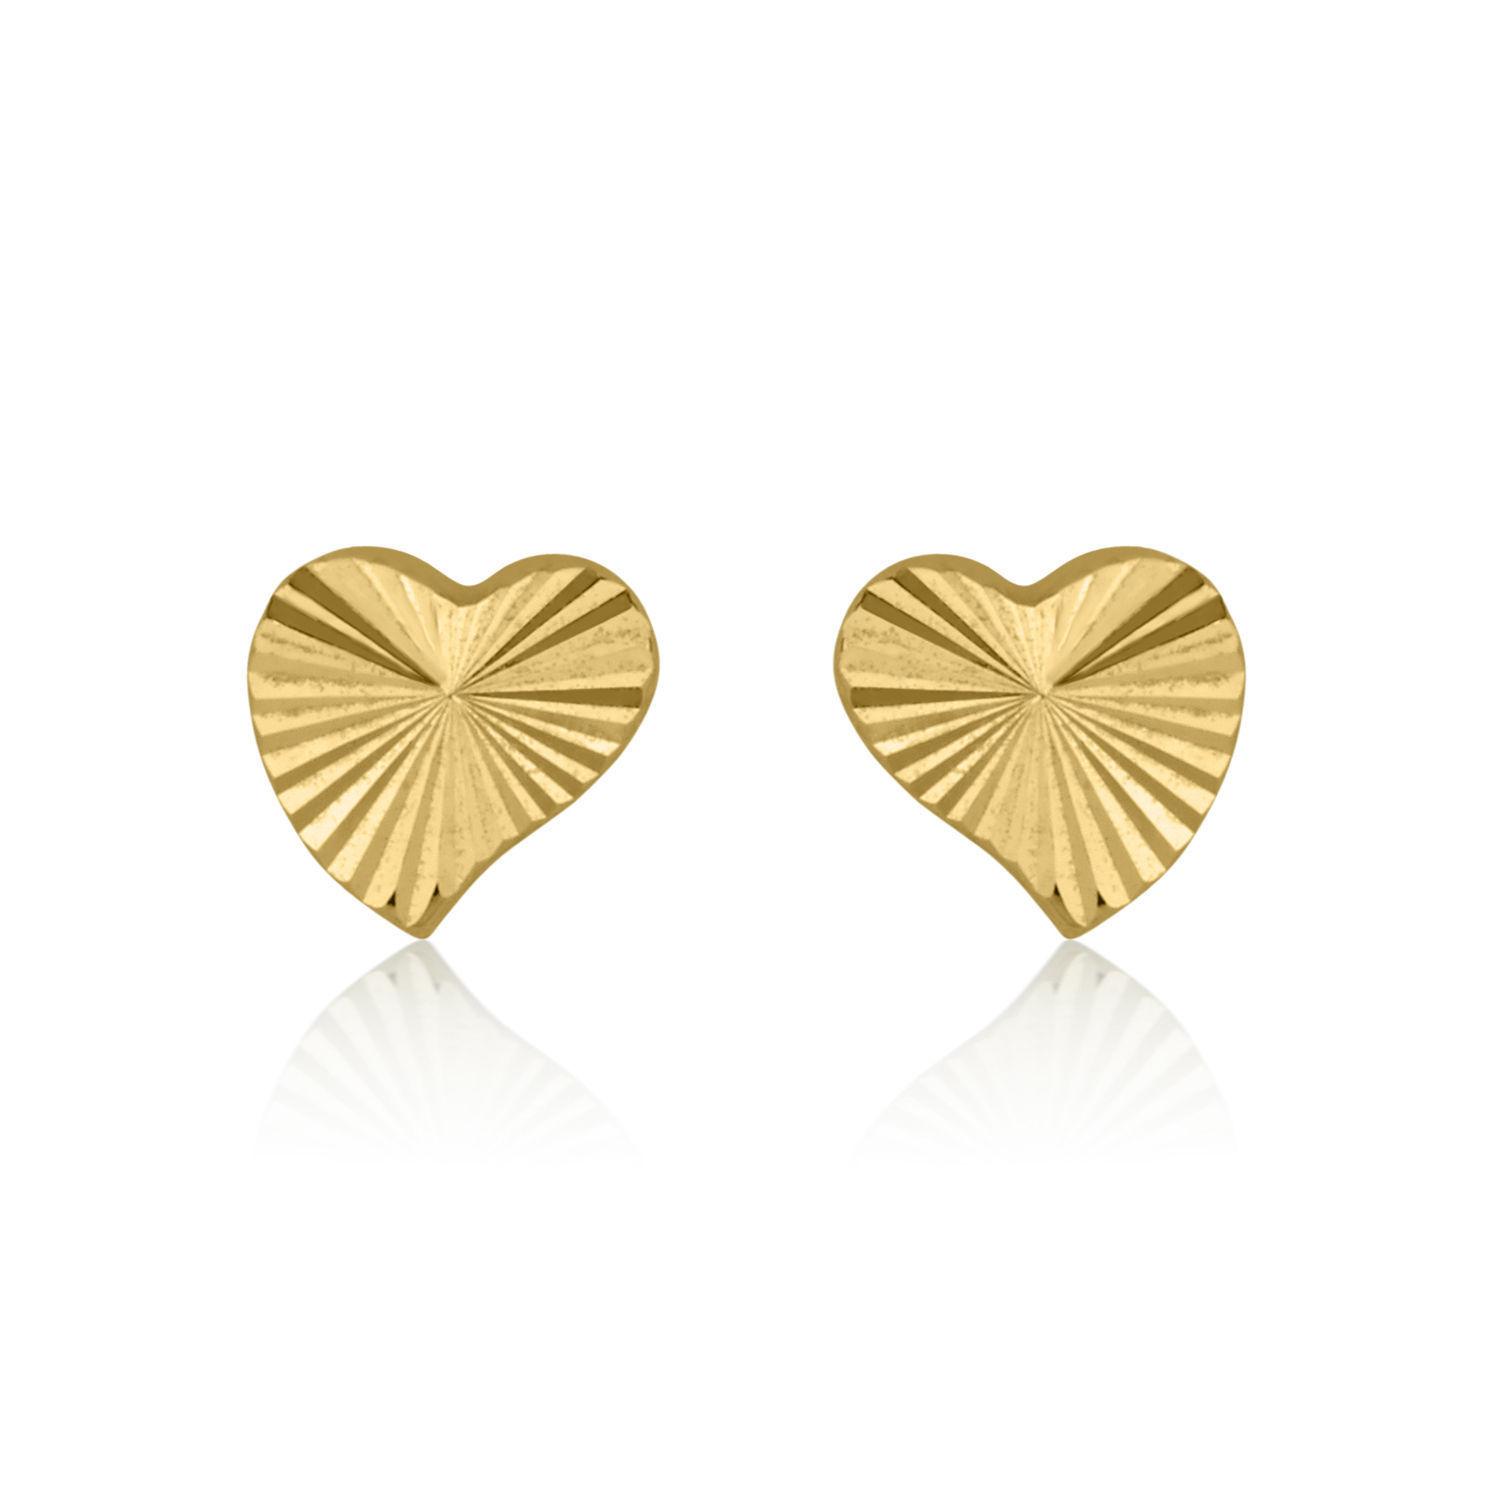 fe9e156f0 Details about Small Baby Earrings Heart 14K Solid Gold Children Studs  Natural Girls Kids Teen